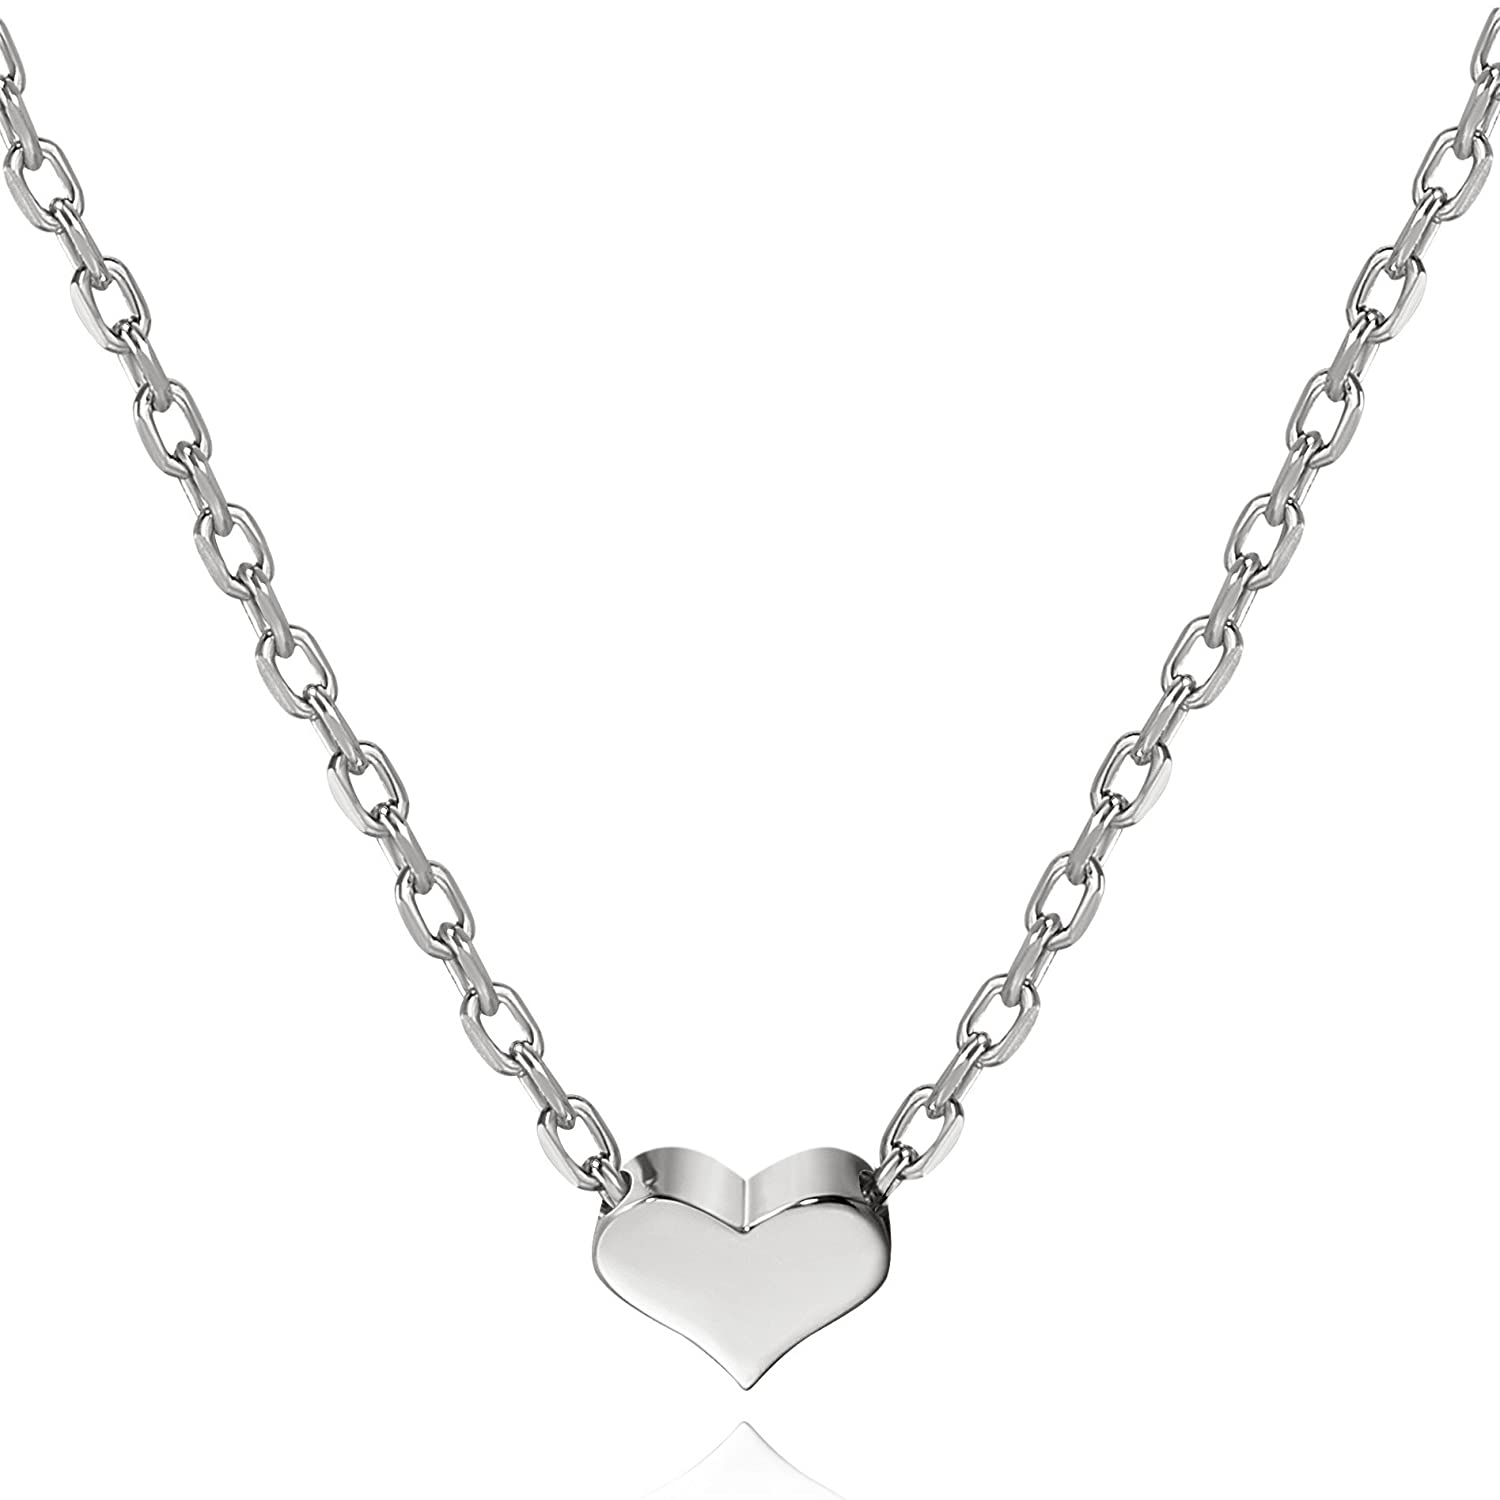 necklace heart avelina jewellery sflheartneck product jewelry silver floating